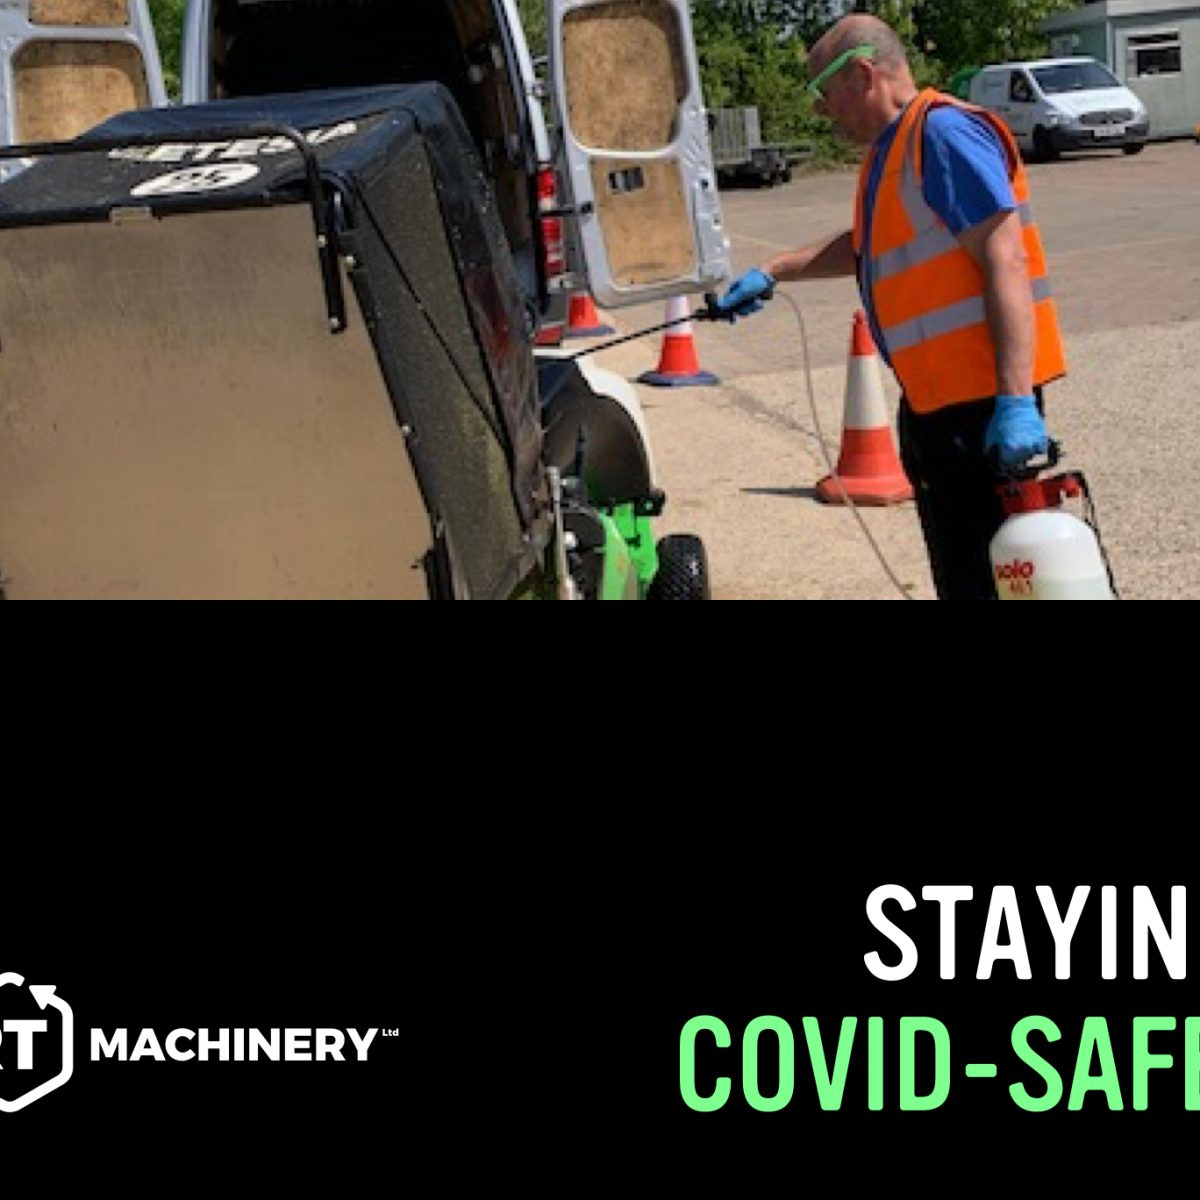 Staying COVID-Safe